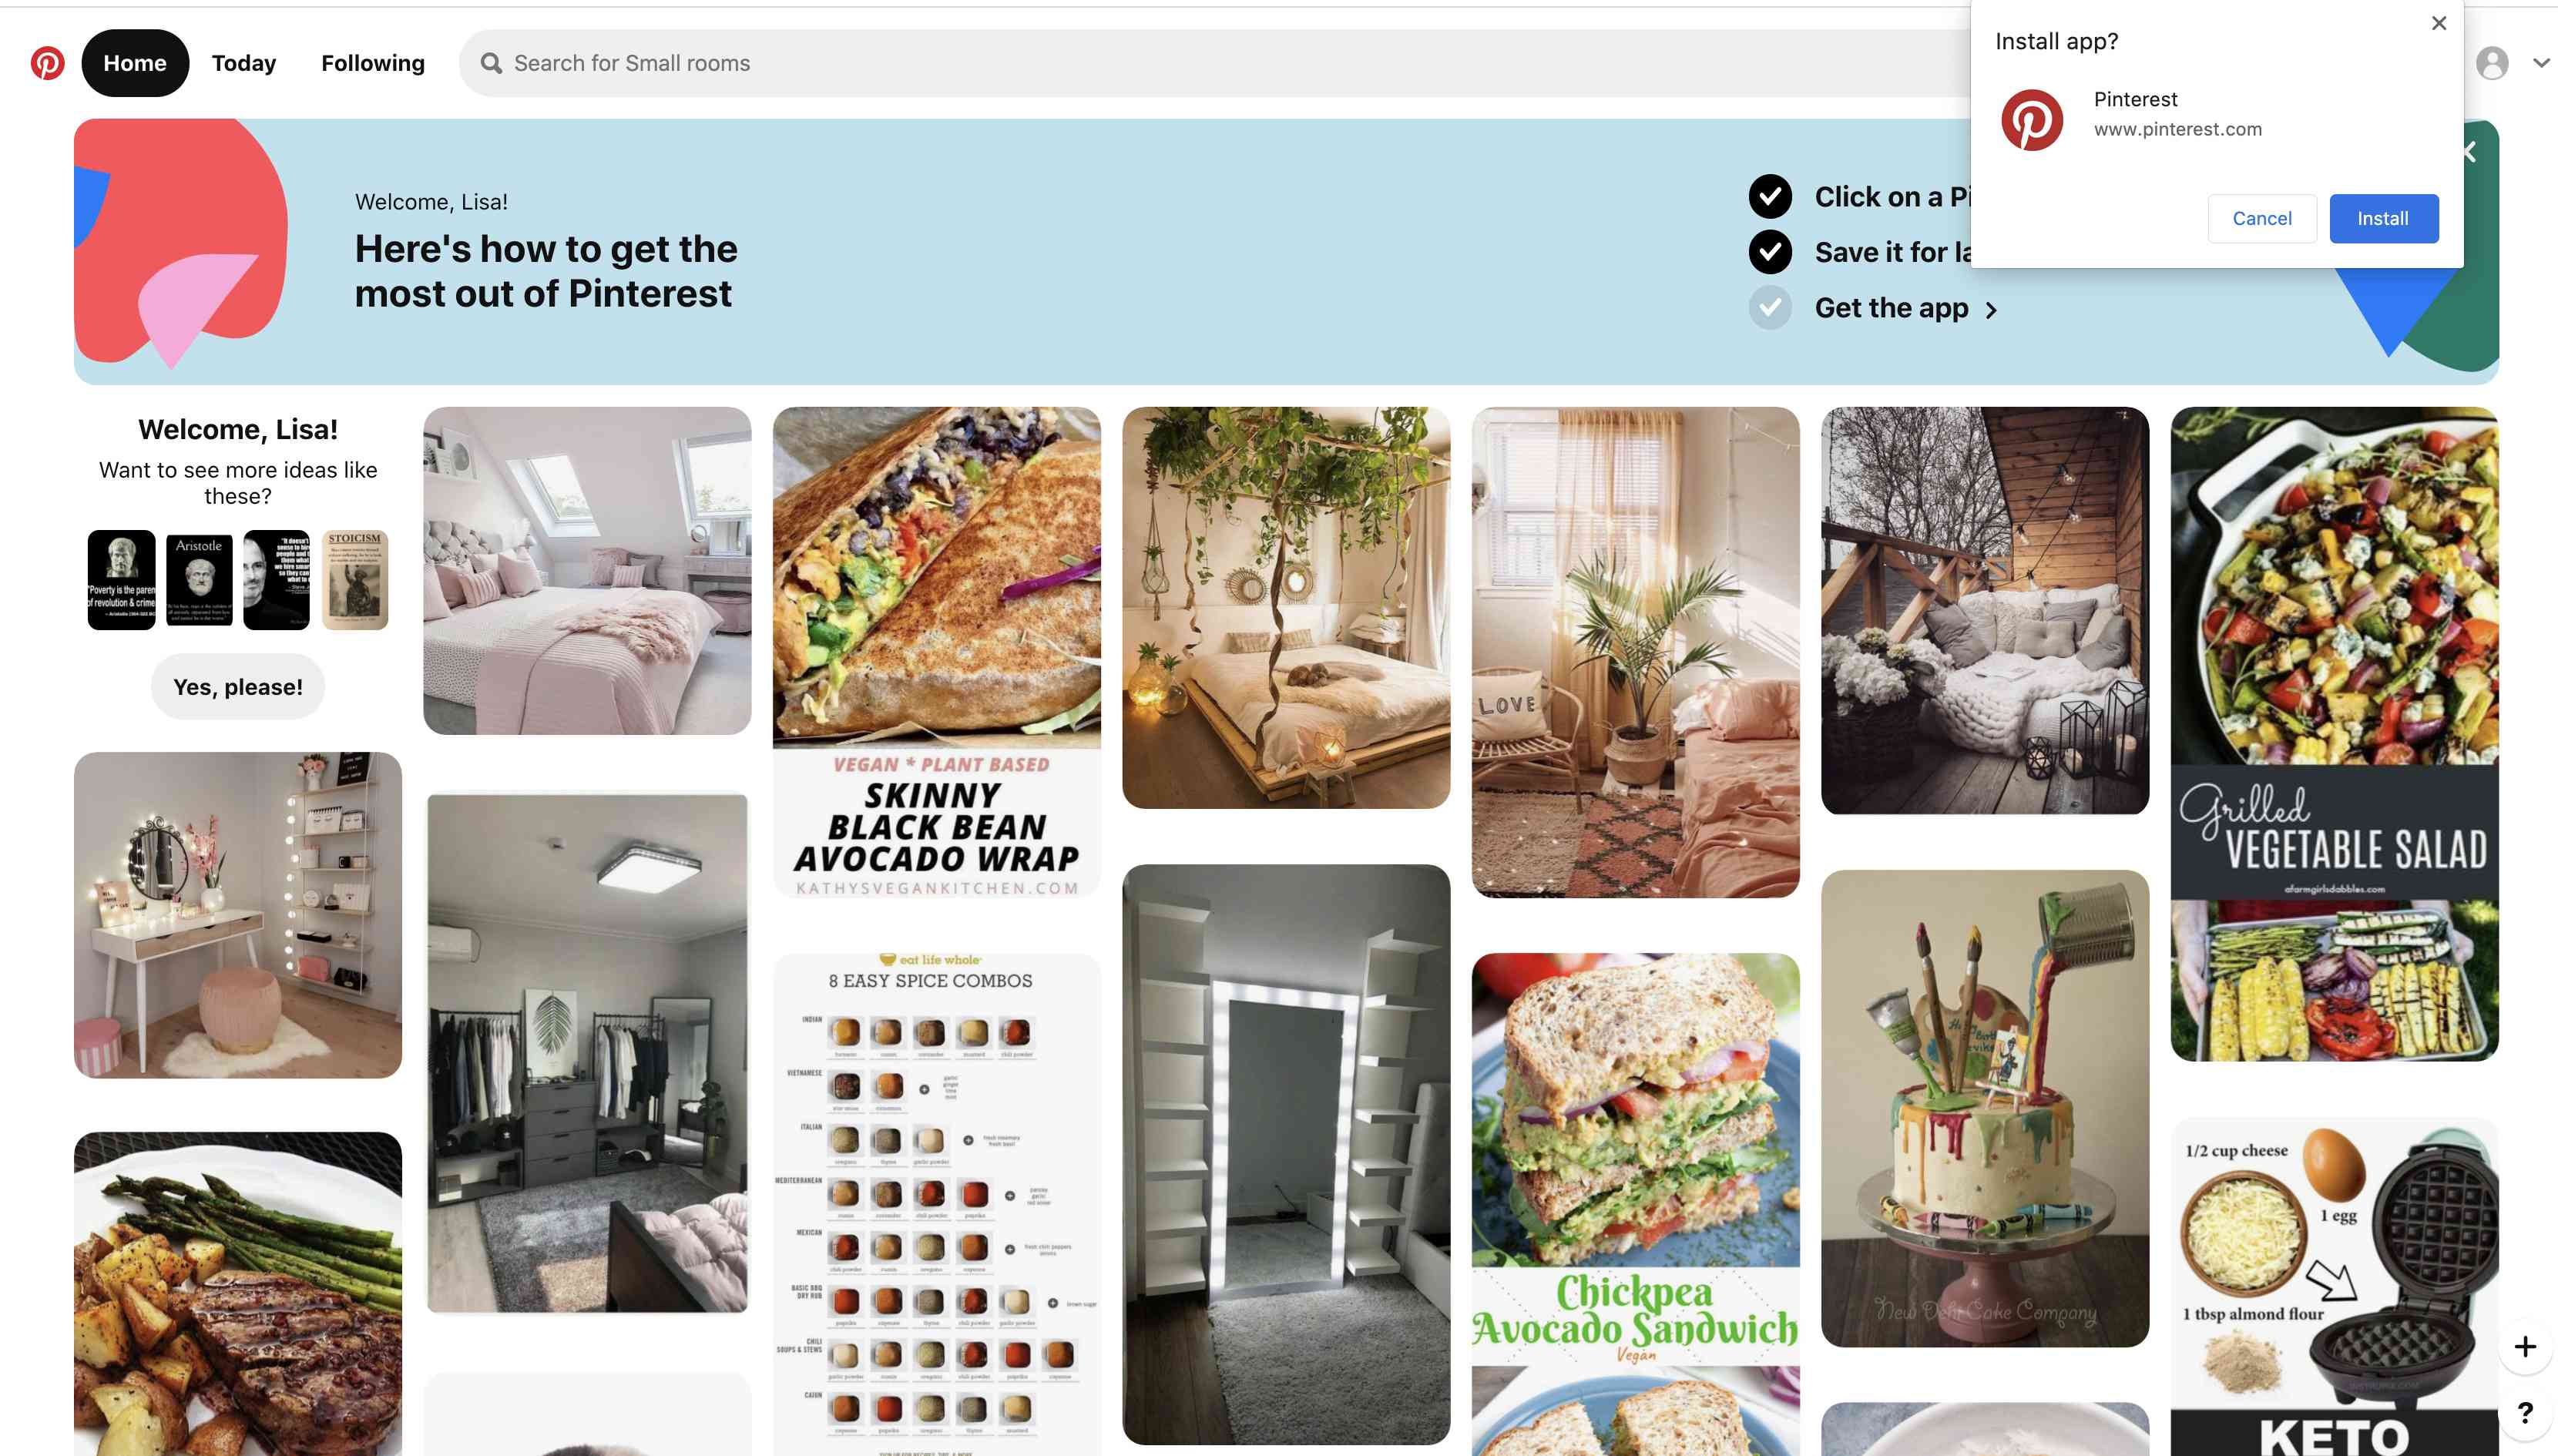 Select Install the Chrome app so a Pinterest tab will run in the background whenever you're in Chrome.